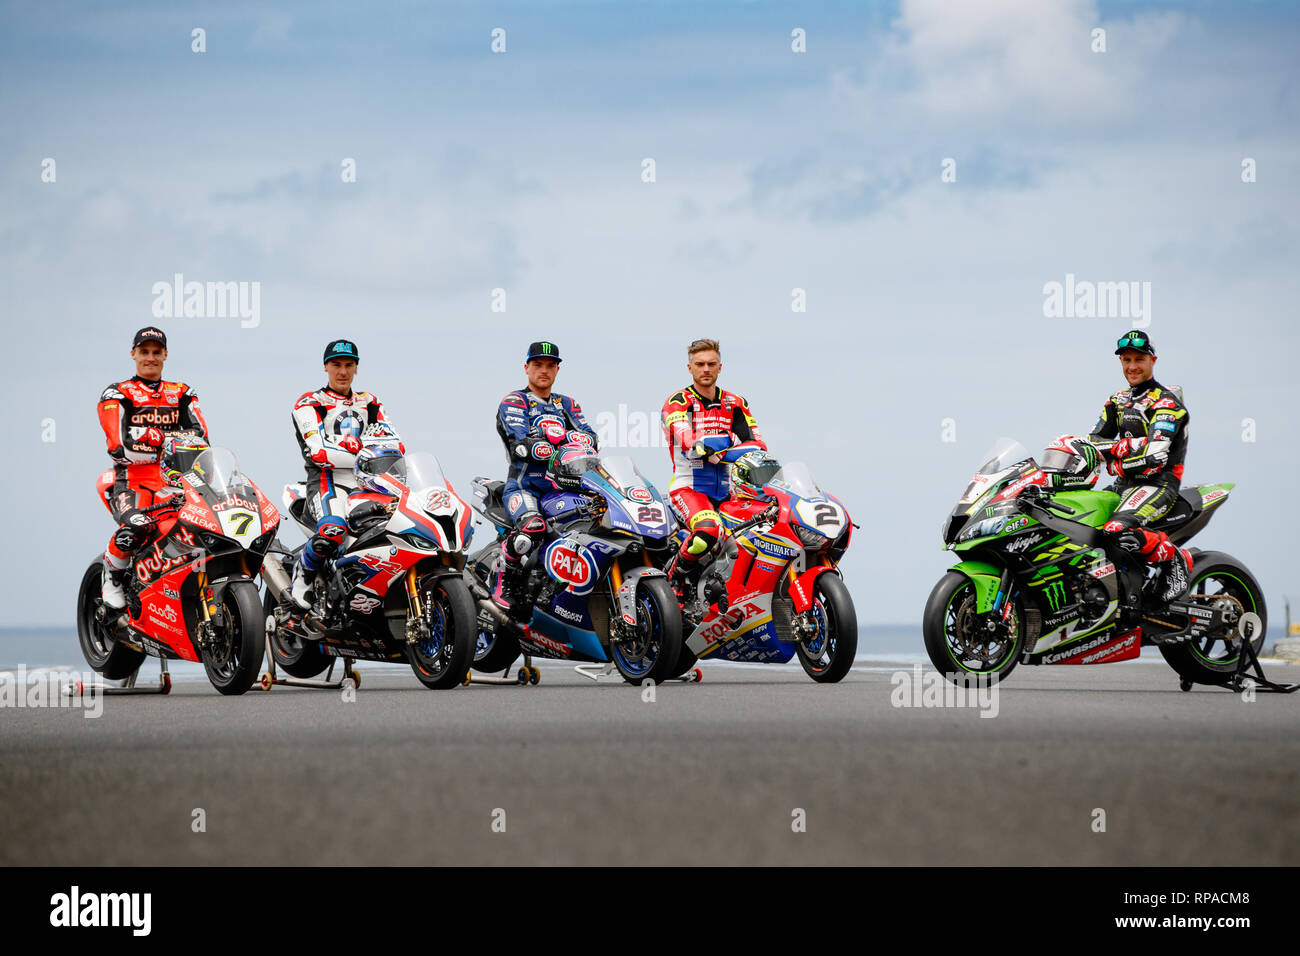 Phillip Island, Australia. 21st Feb, 2019. Chaz Davies, Markus Reiterberger, Alex Lowes, Leon Camier and Jonathan Rea line up for a group photo on Gardner Straight at Phillip Island for the Superbike World Championship of Australia. Credit: corleve/Alamy Live News - Stock Image